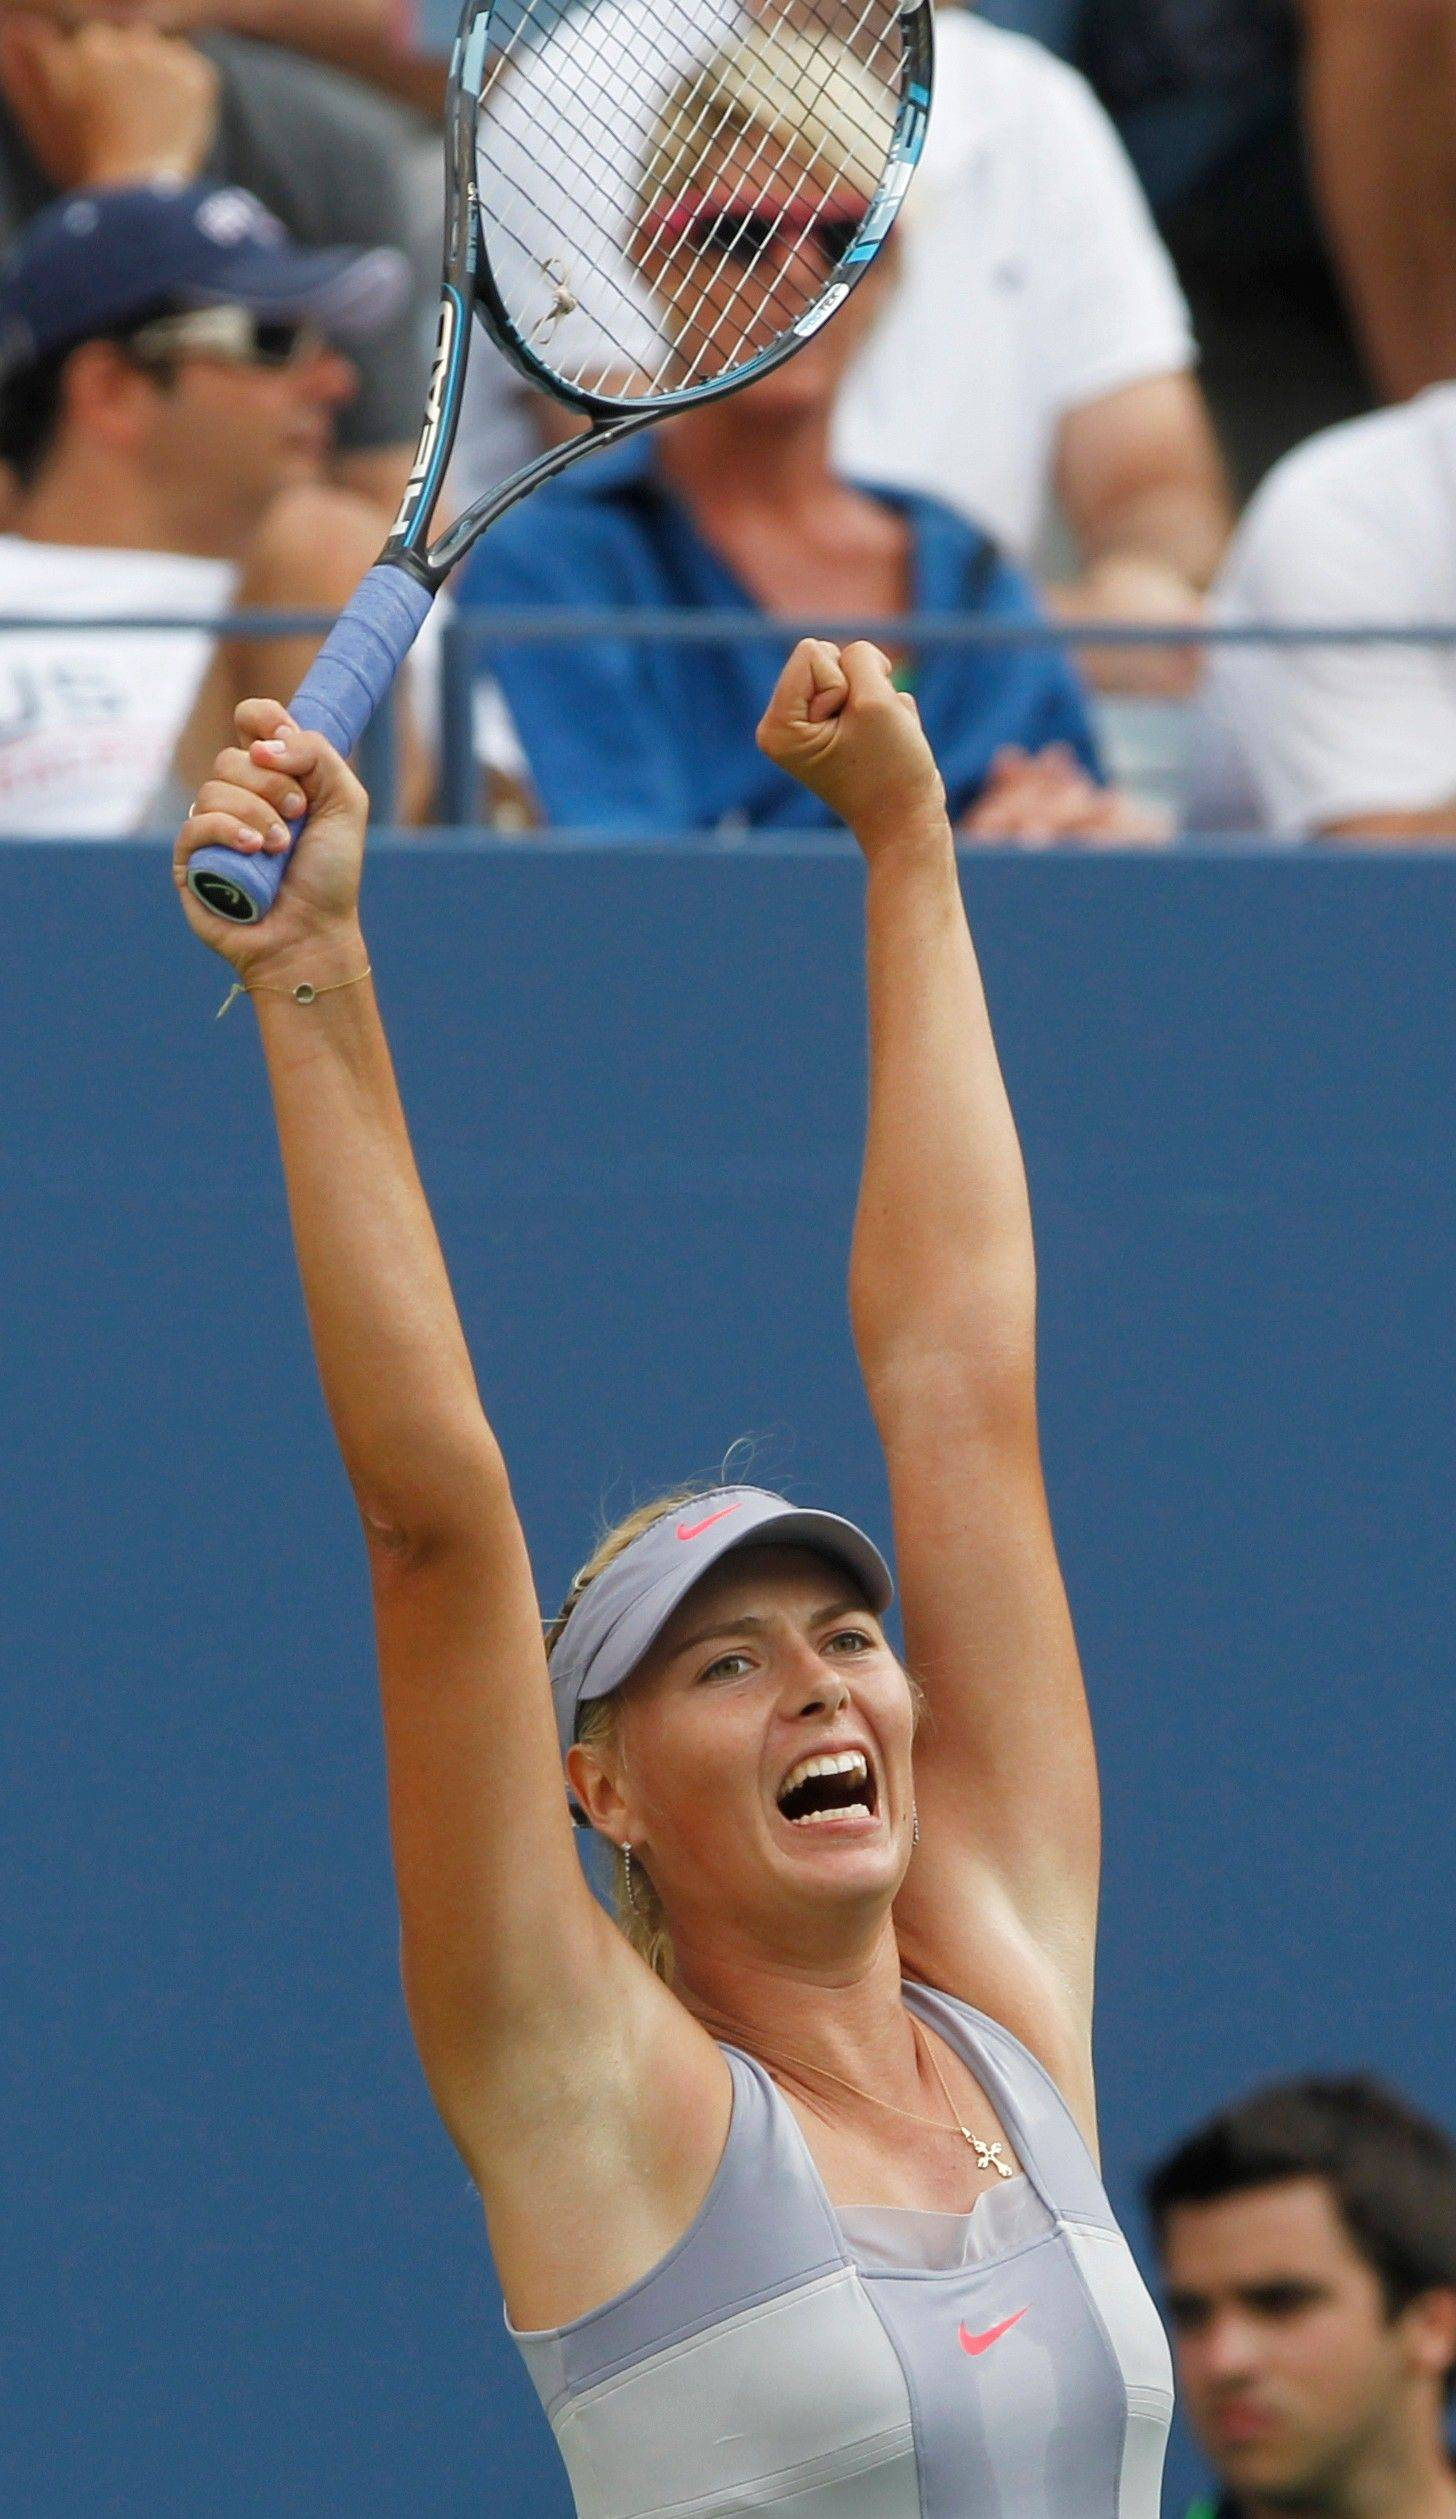 Maria Sharapova reacts after rallying to beat Heather Watson on Monday by scores of 3-6, 7-5, 6-3 in the first round of the U.S. Open in New York.